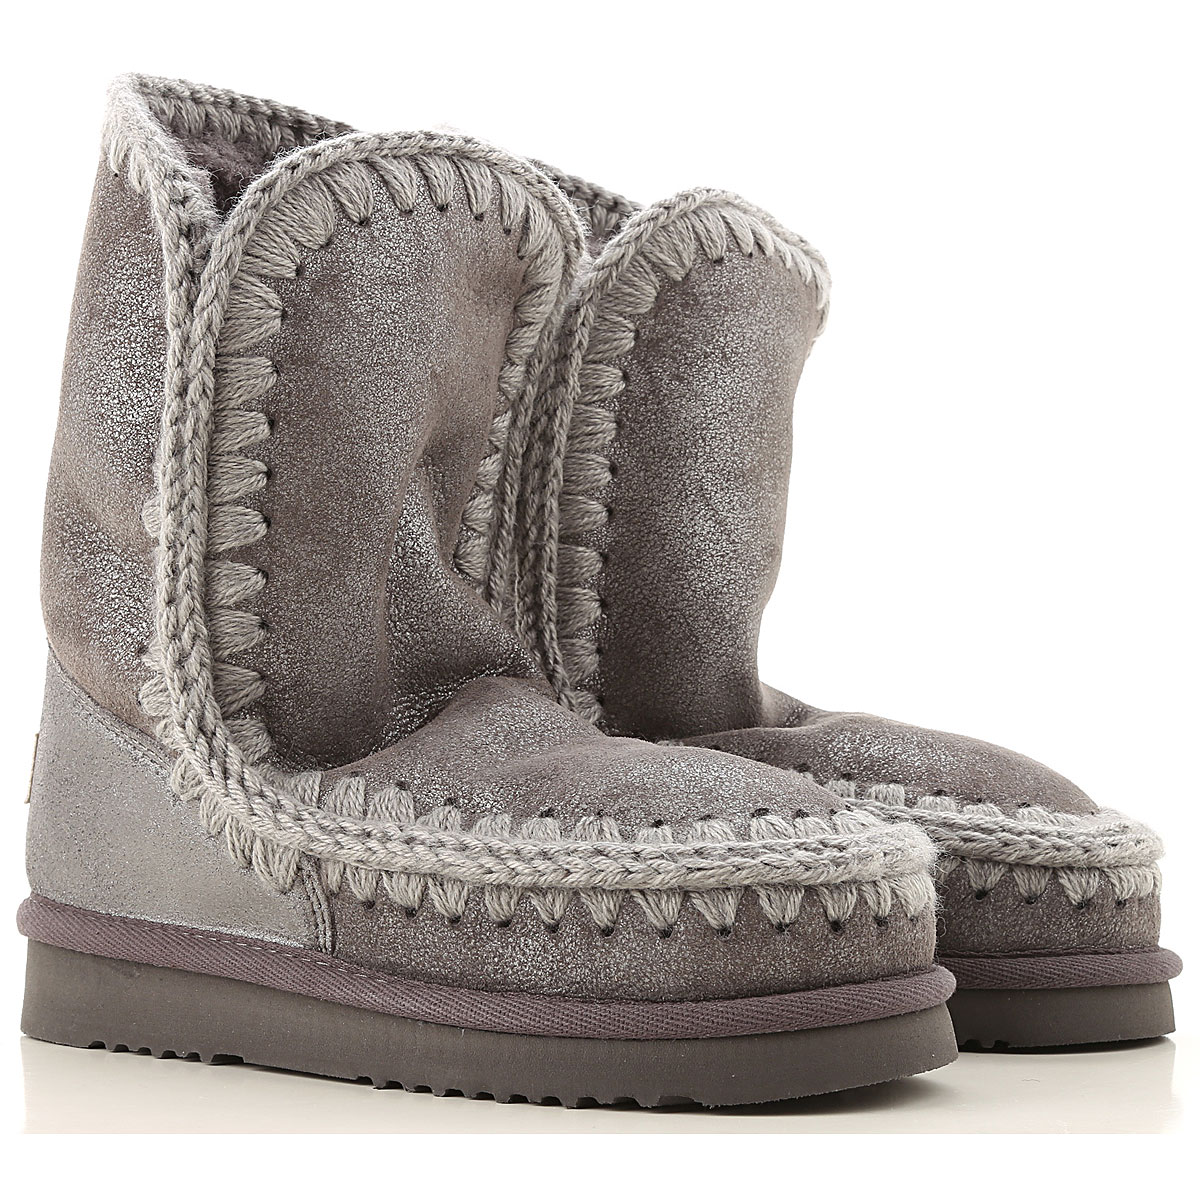 Mou Boots for Women, Booties On Sale, Medium Grey, Leather, 2019, EUR 37 - UK 4 - USA 6.5 EUR 38 - UK 5 - USA 7.5